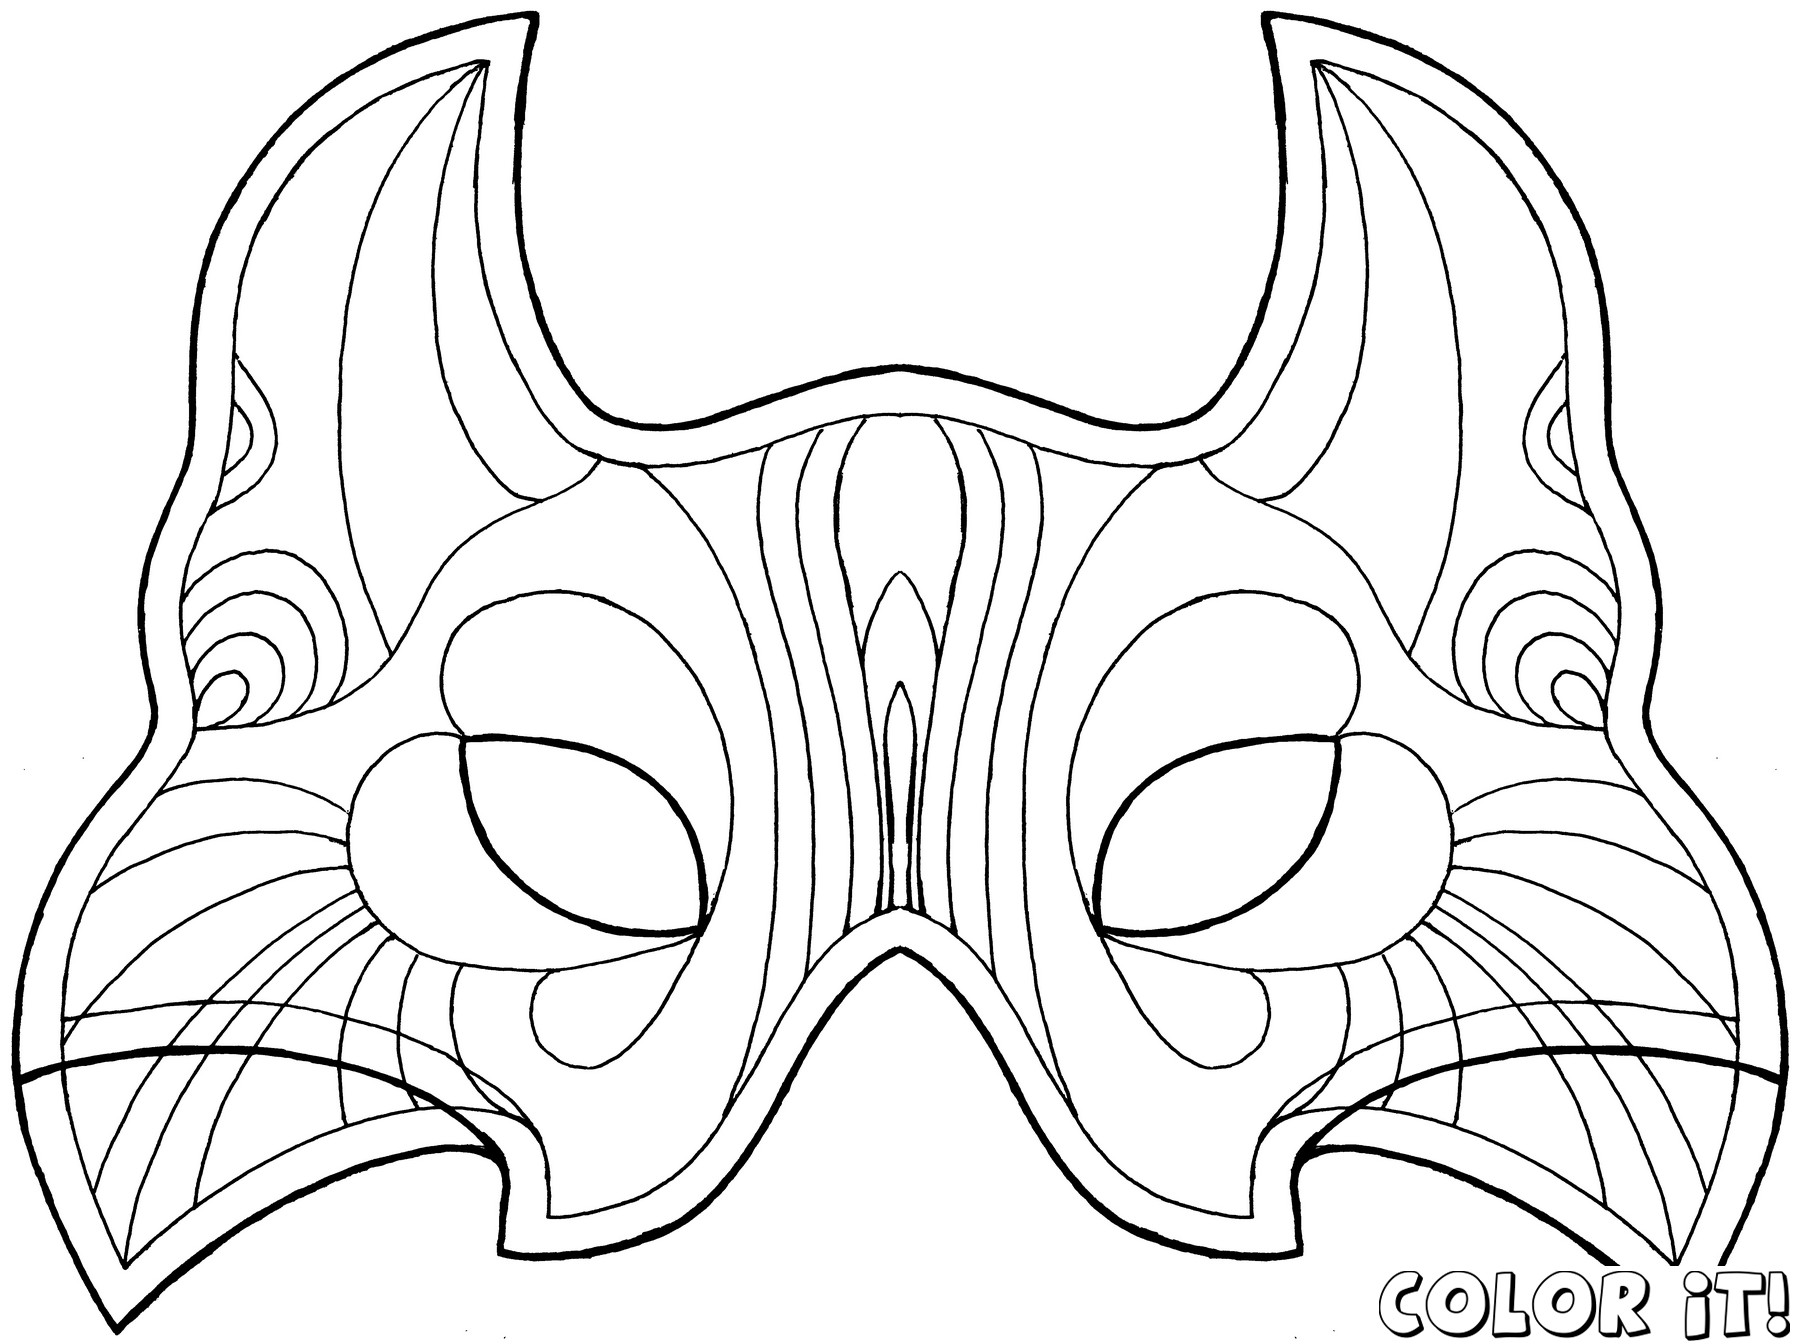 Coloring Pages Coloring Pages Masks masks coloring pages futpal com mask eassume